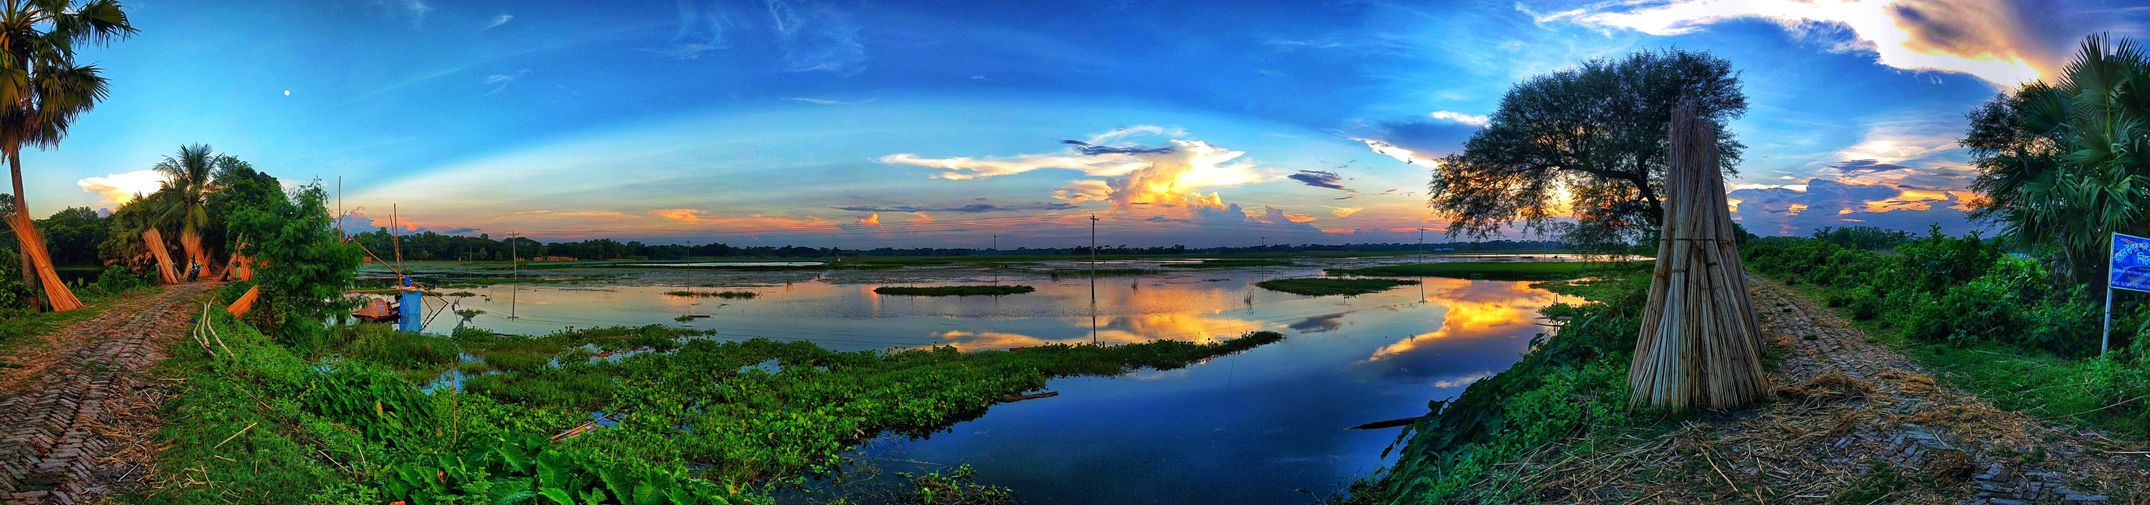 Reflection Water Sky Tranquil Scene Cloud - Sky Tree Nature Beauty In Nature Tranquility Scenics Lake Outdoors No People Sunset Panoramic Growth Landscape Grass Day EyeEmNewHere @anickchowdhurymp Eyeembangladesh Mobilephotography